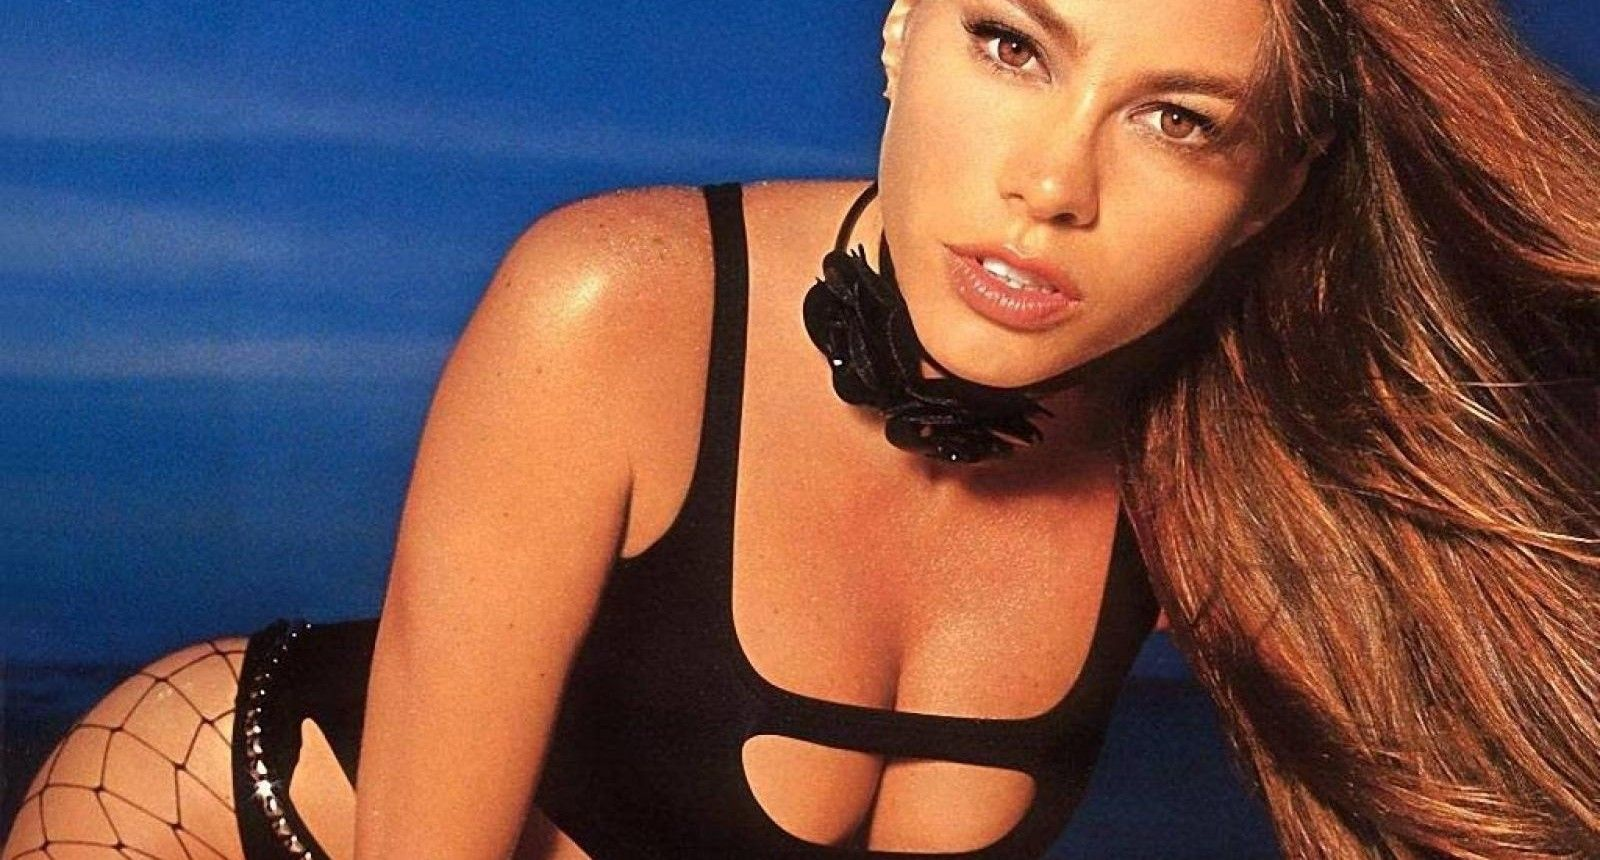 5299a957dab Top 15 Hottest Pictures Of Sofia Vergara | TheRichest